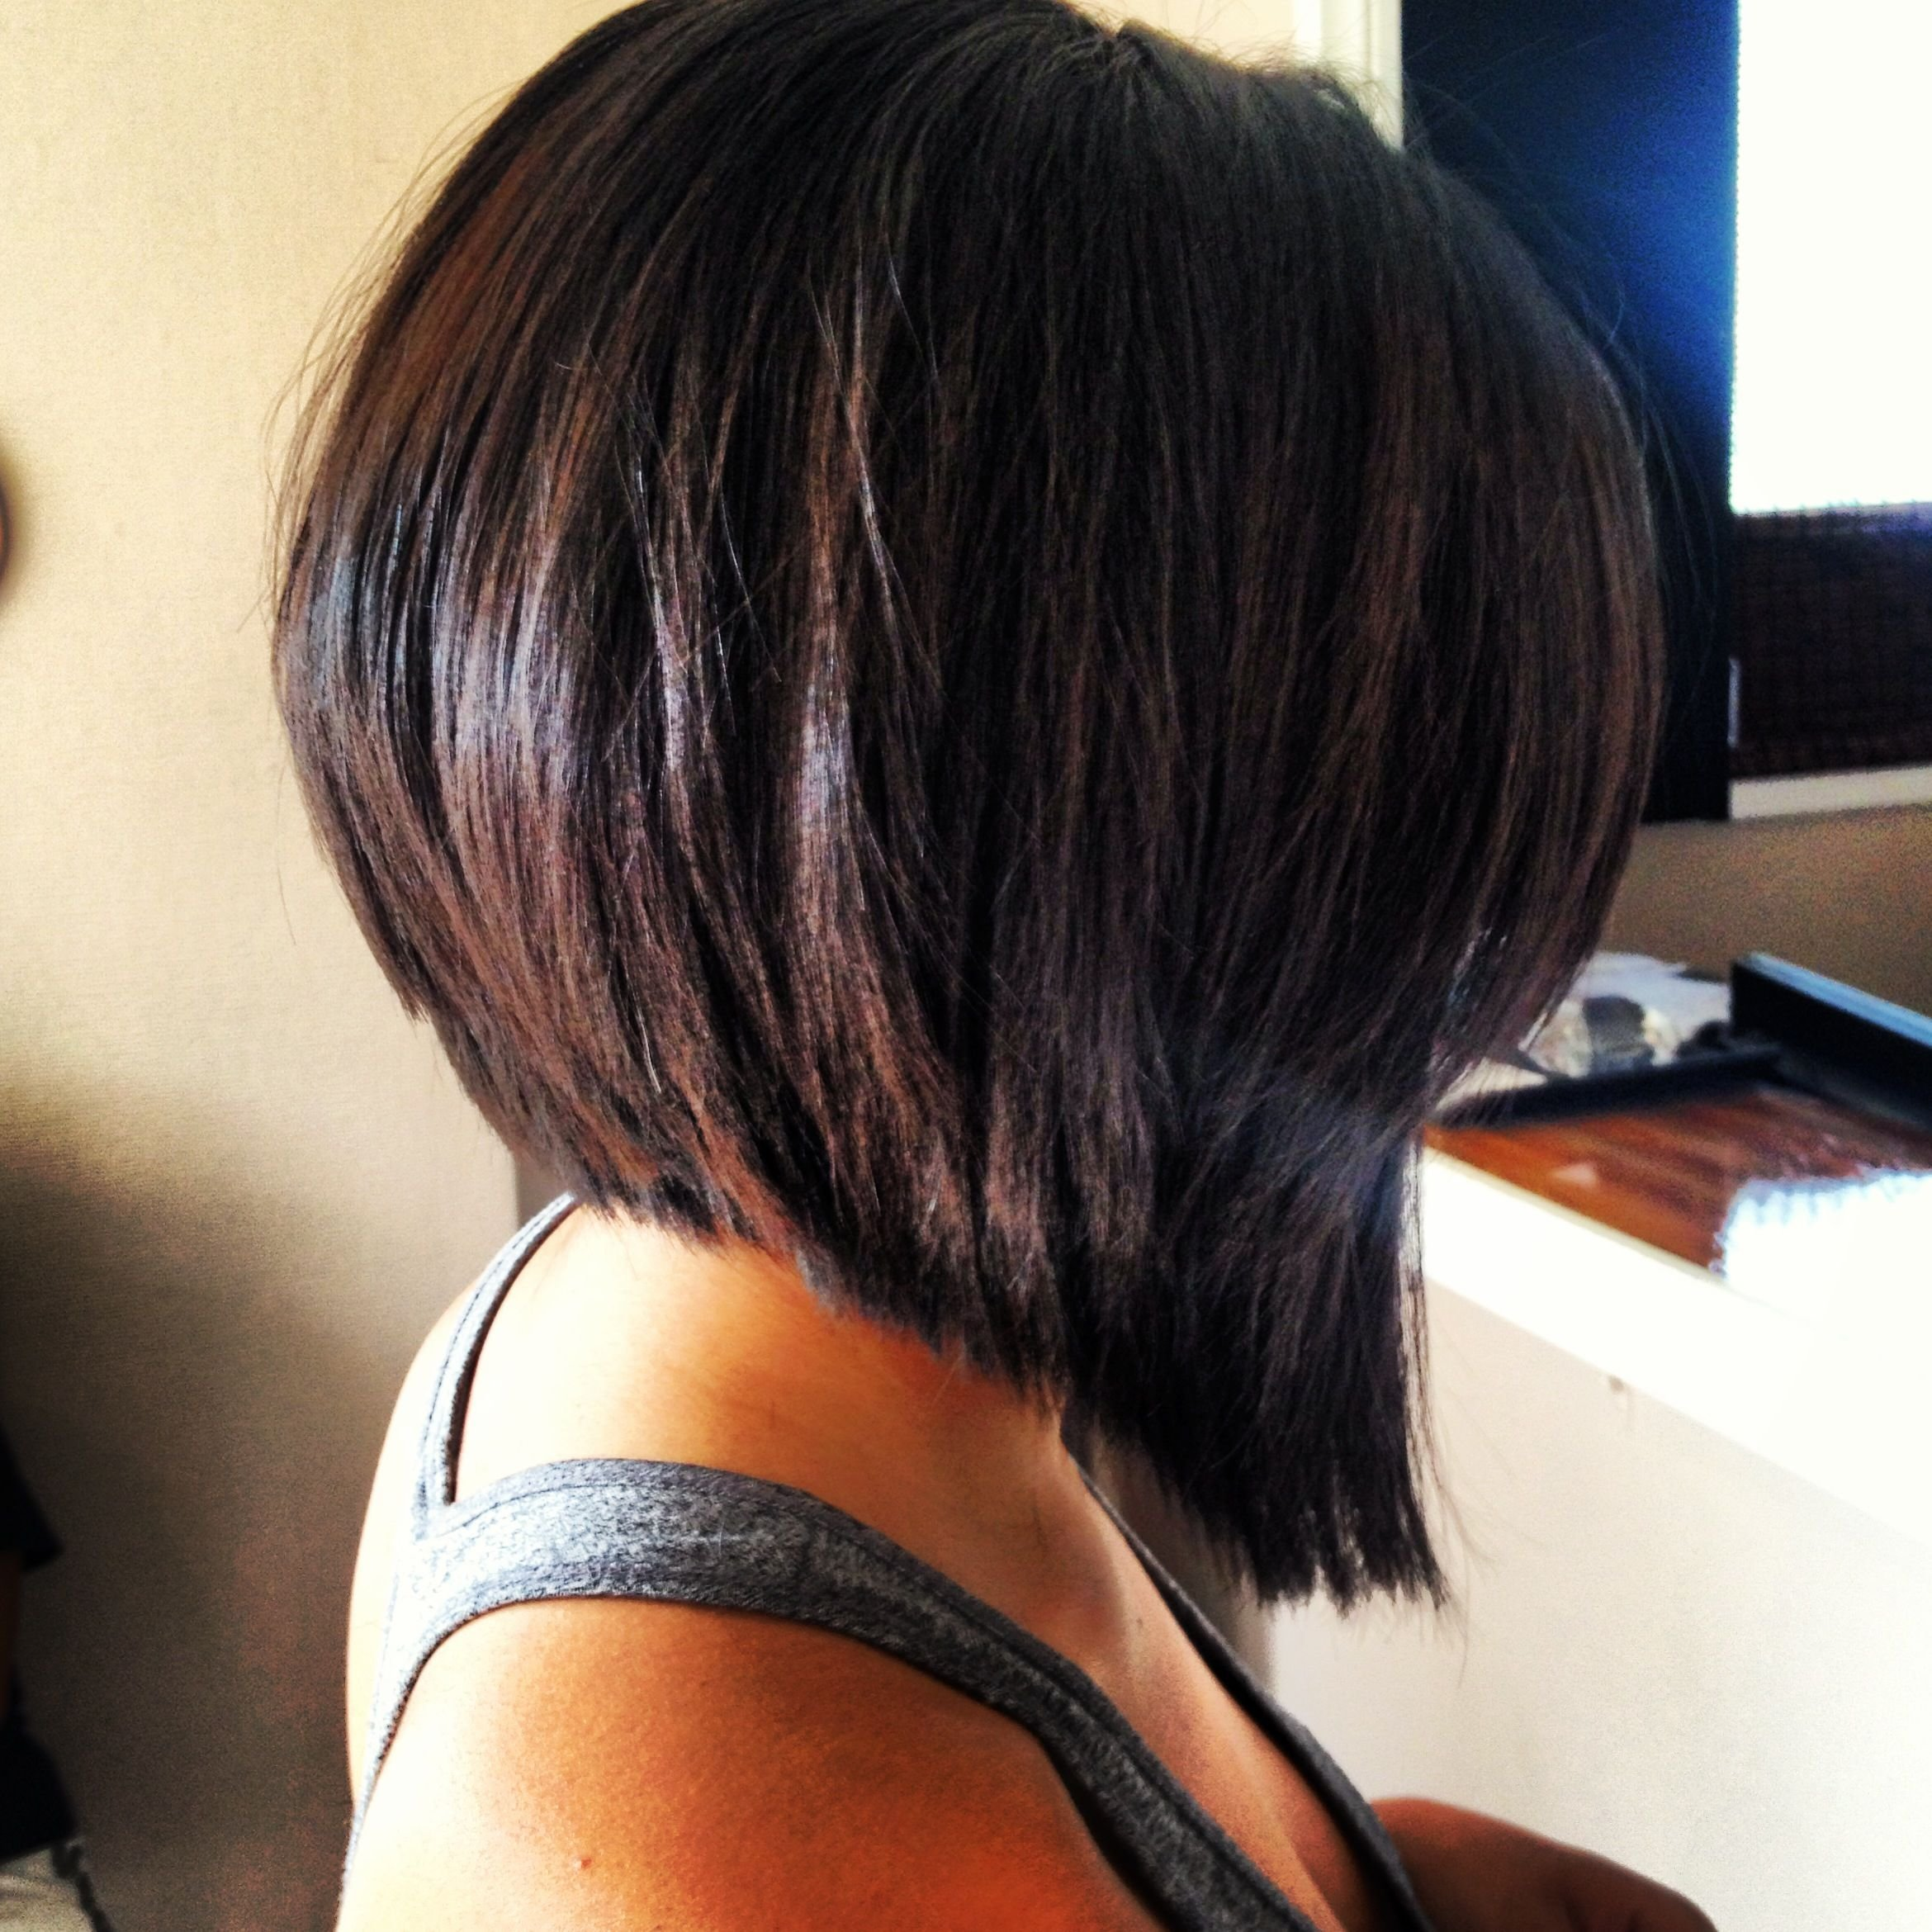 The Best Hair Cuts Styles On Pinterest Faux Hawk Haircuts And Short Hai… Pictures